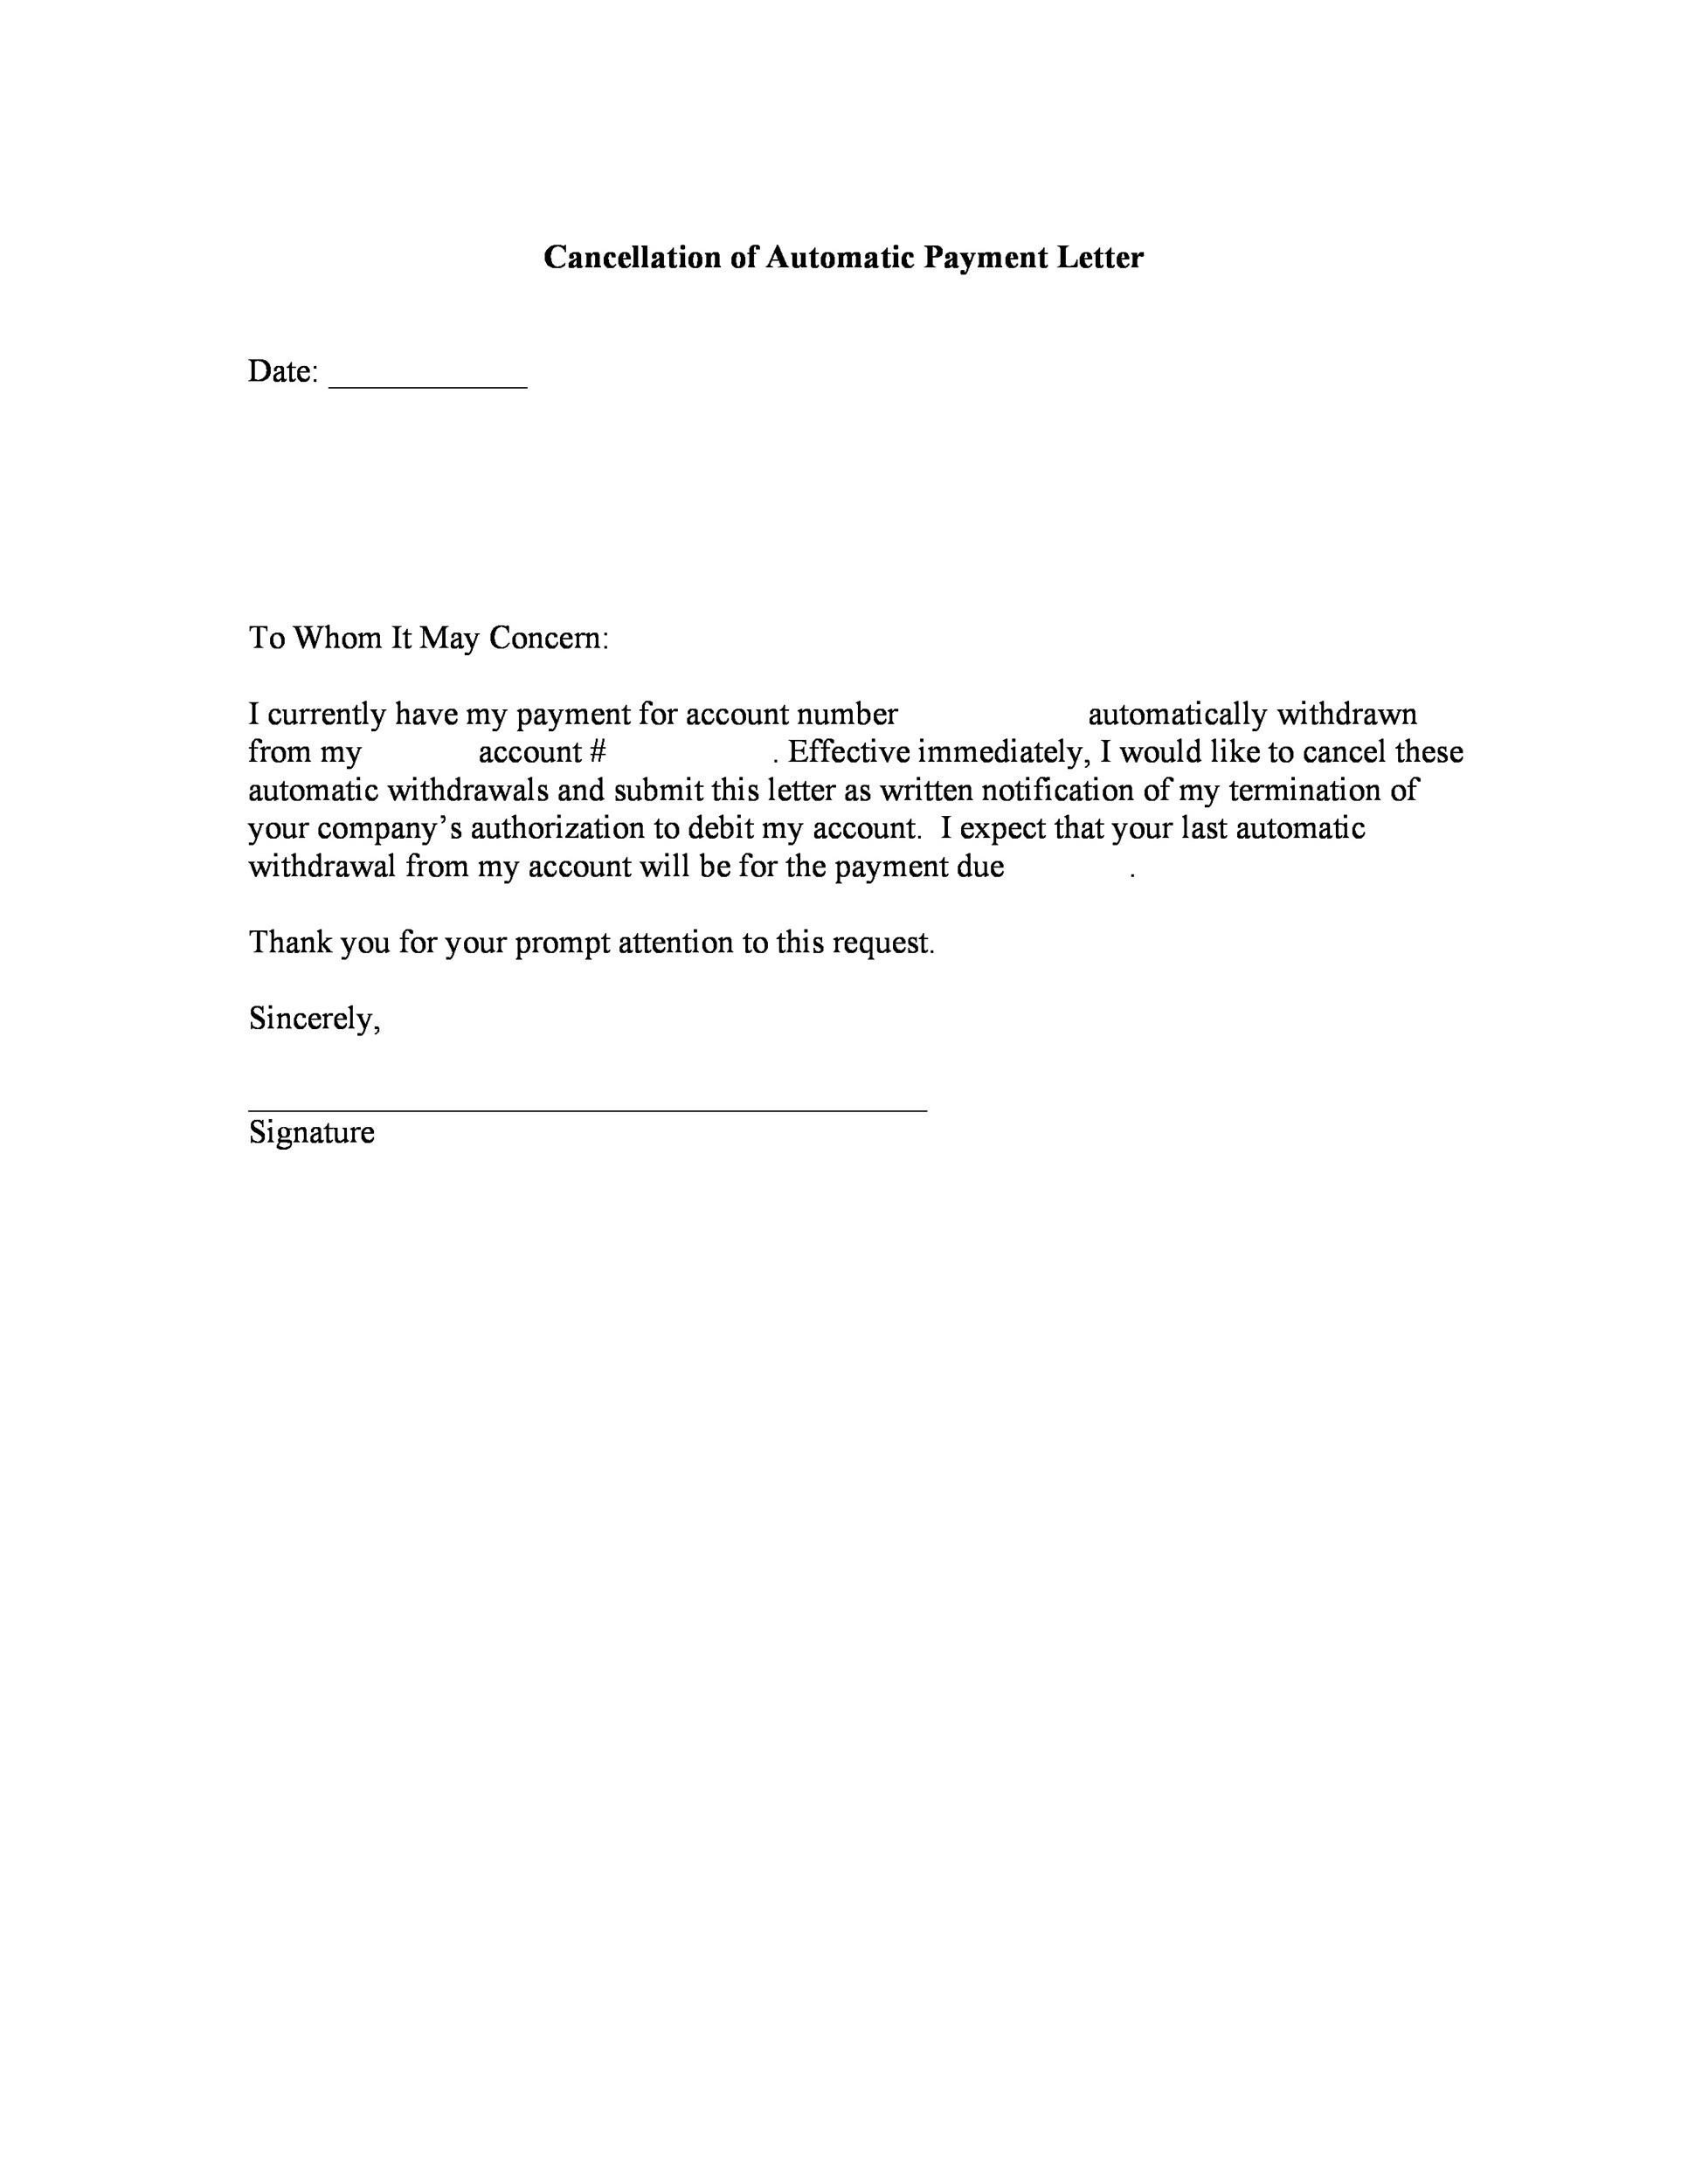 Free cancellation letter 40